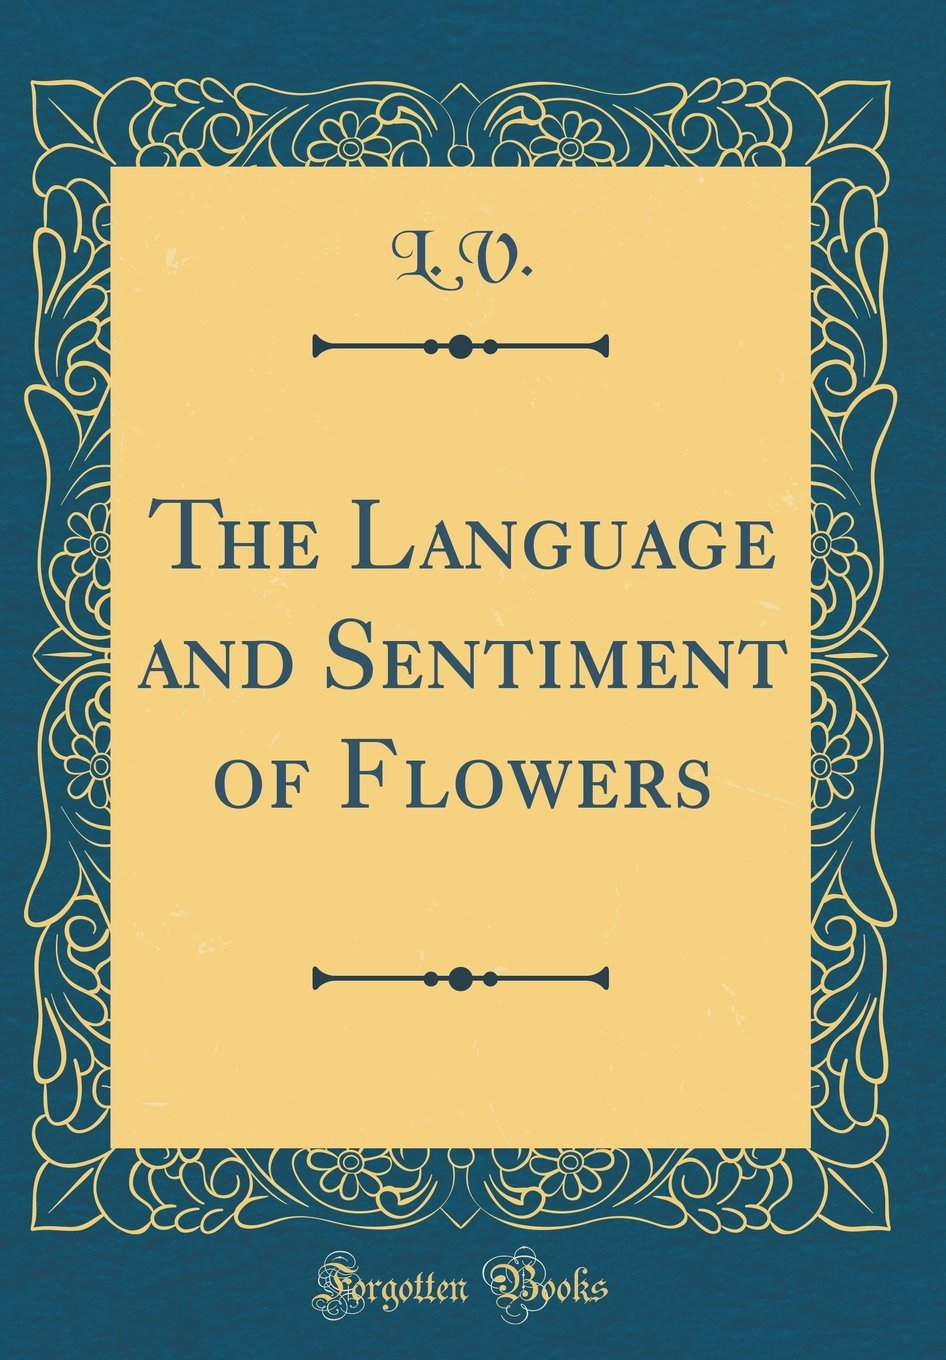 The Language and Sentiment of Flowers (Classic Reprint) by Forgotten Books